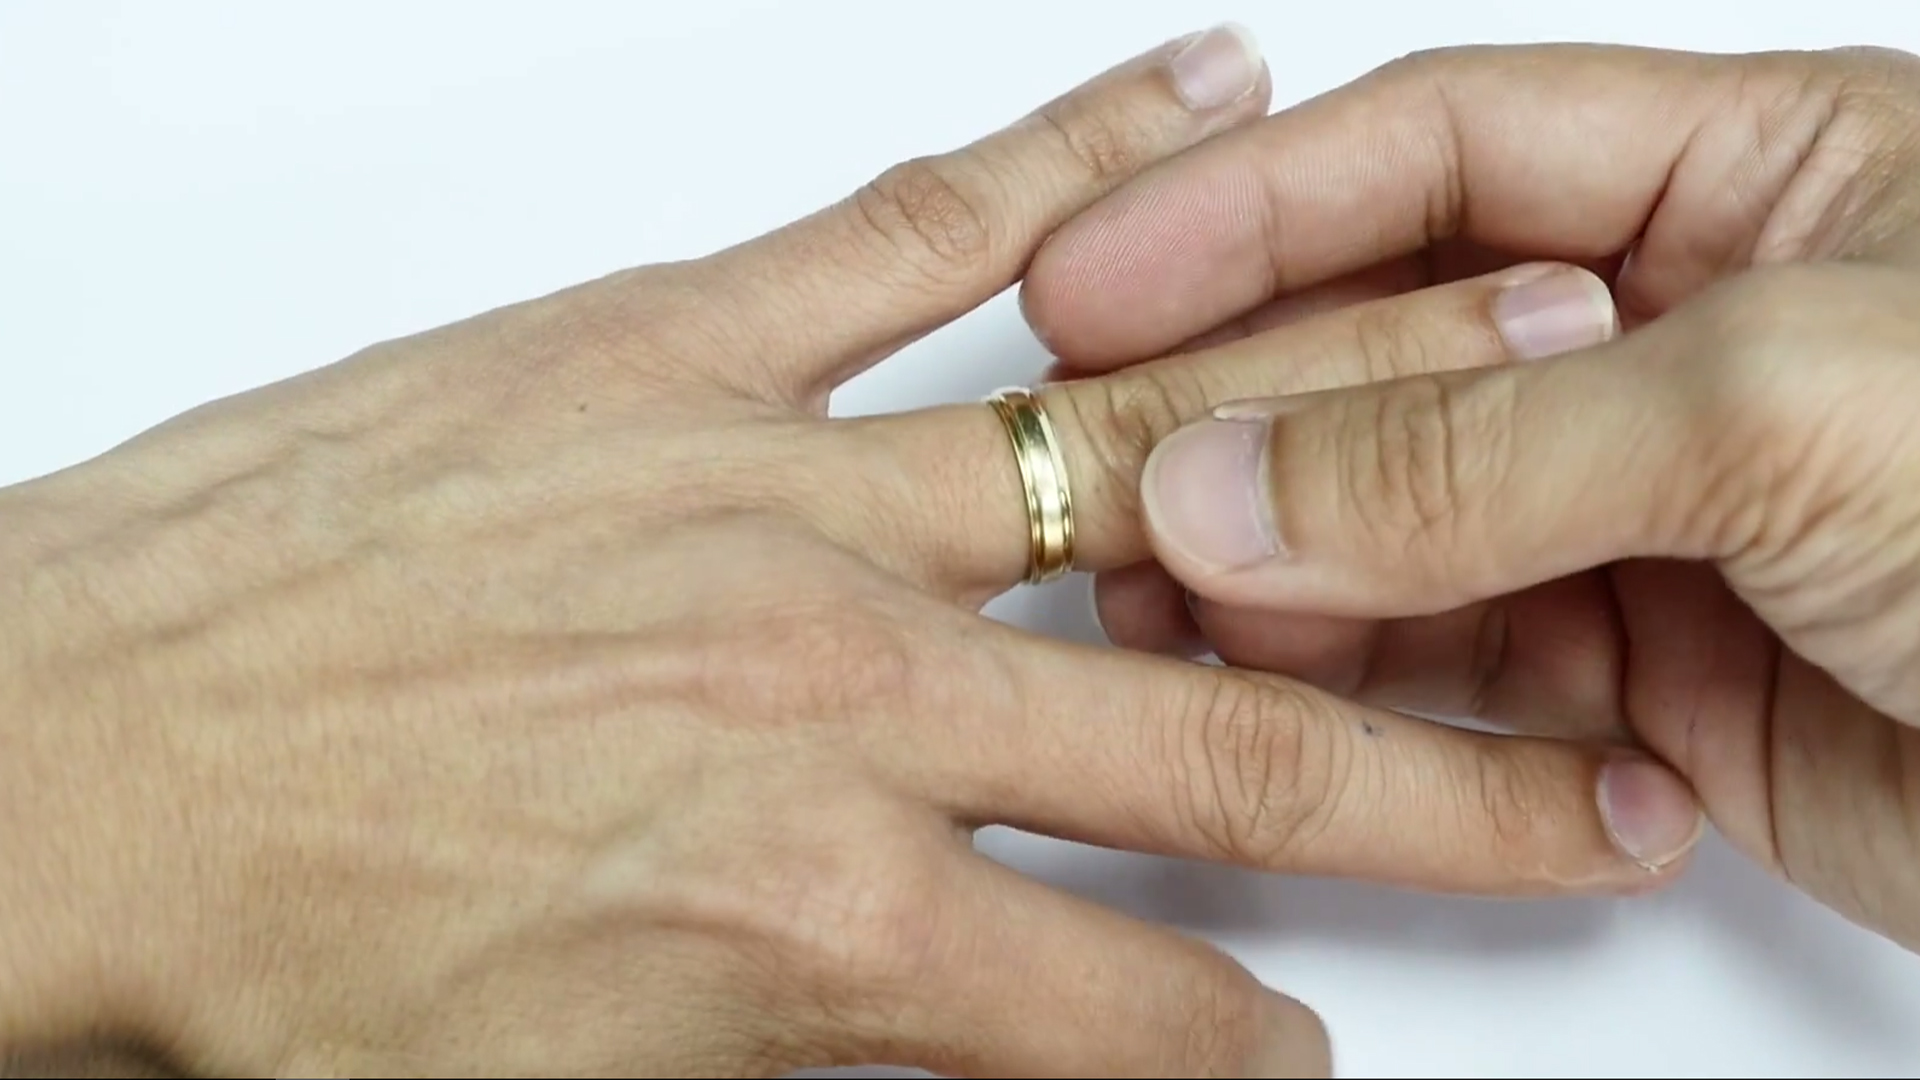 JannPaul Education: How to remove a ring stuck on your finger